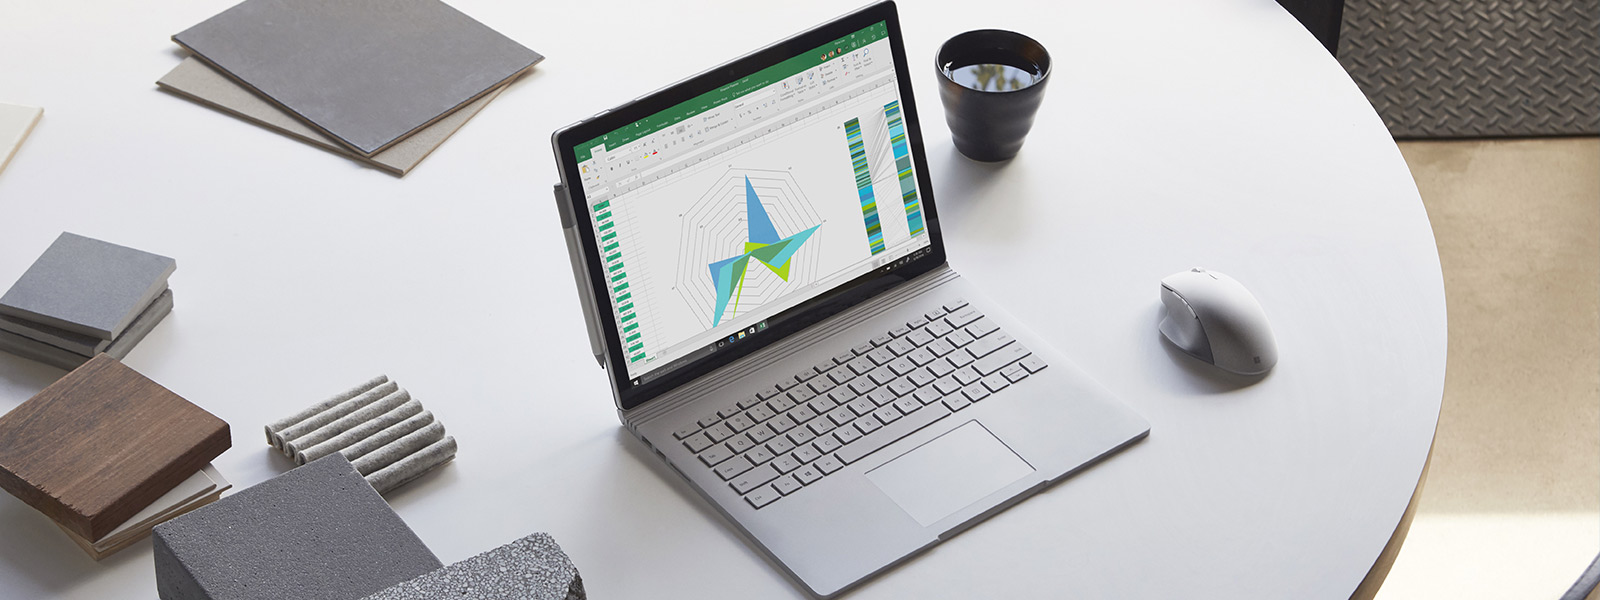 Excel on a Surface Book 2